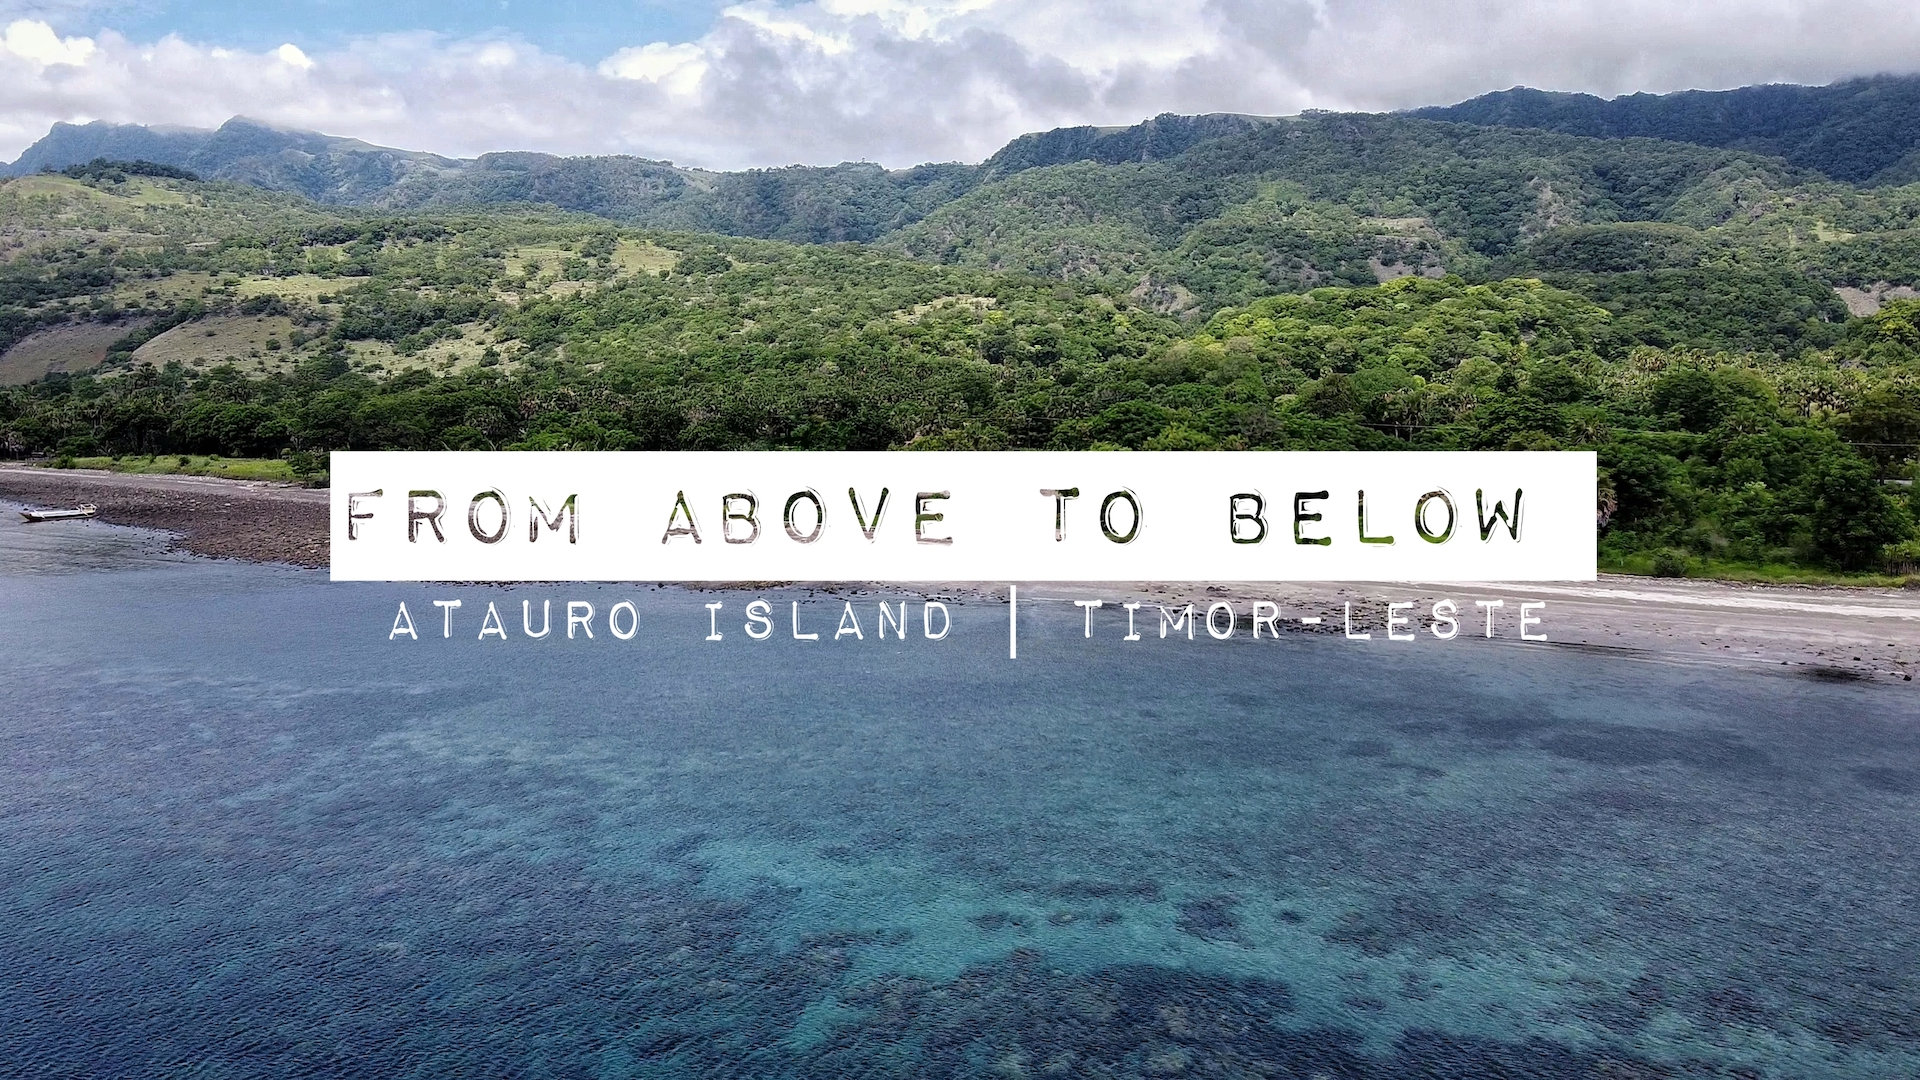 From Above To Below   Atauro Island, Timor-Leste